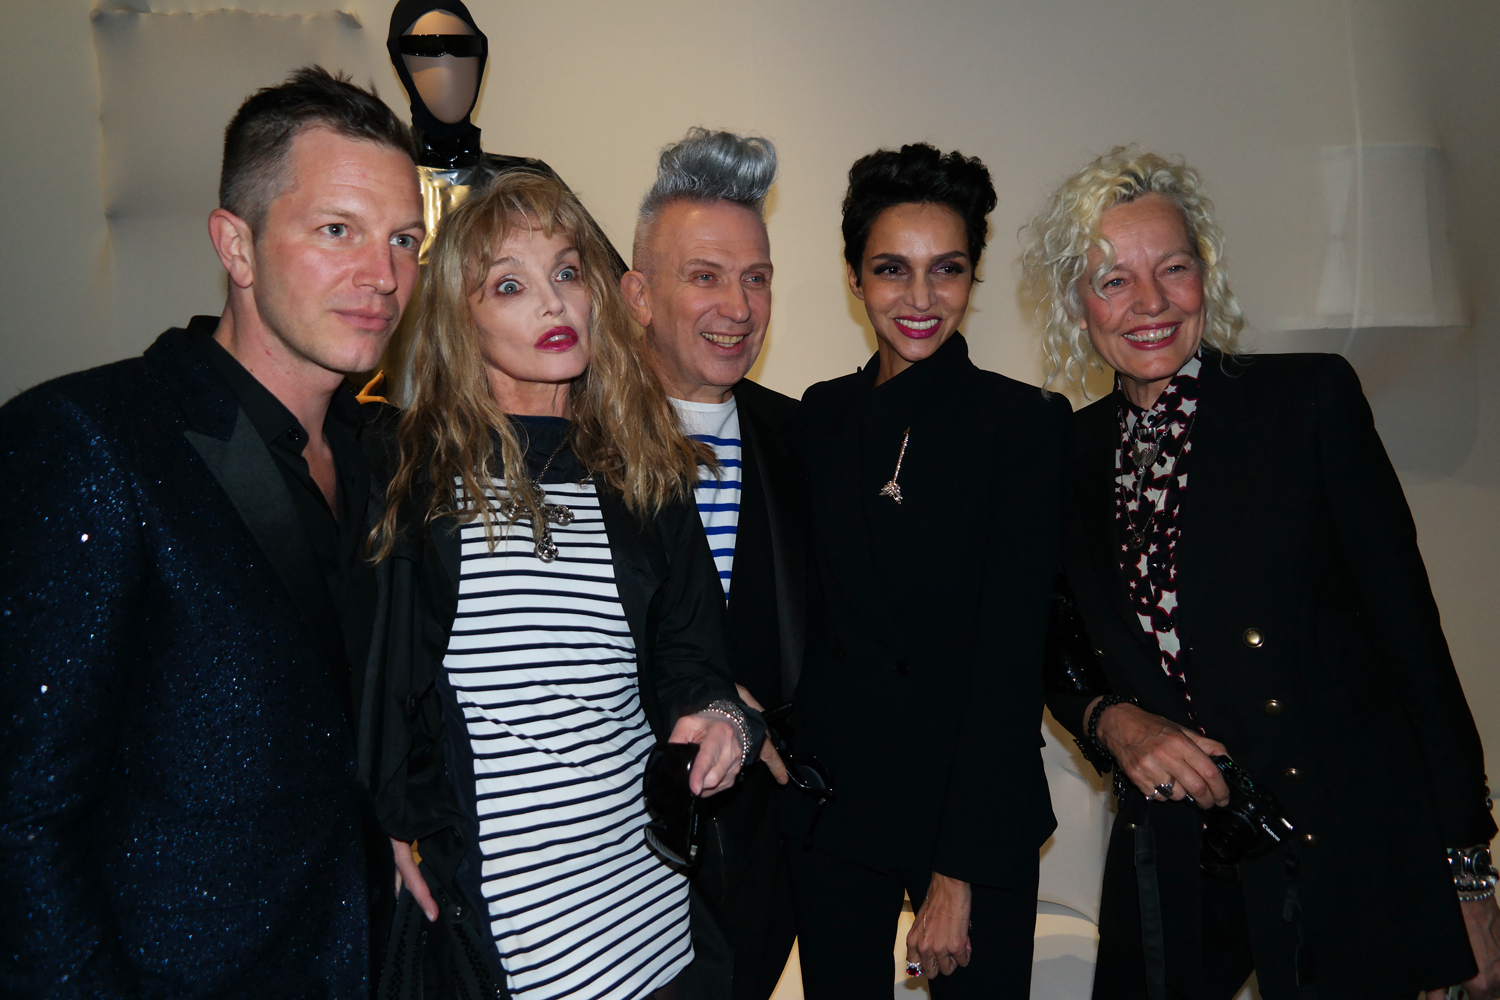 Thierry Maxime Loriot commissaire exposition Arielle Dombasle Jean Paul Gaultier Farida Khelfa Ellen Von Unwerth exposition Grand Palais photo United States of Paris Blog